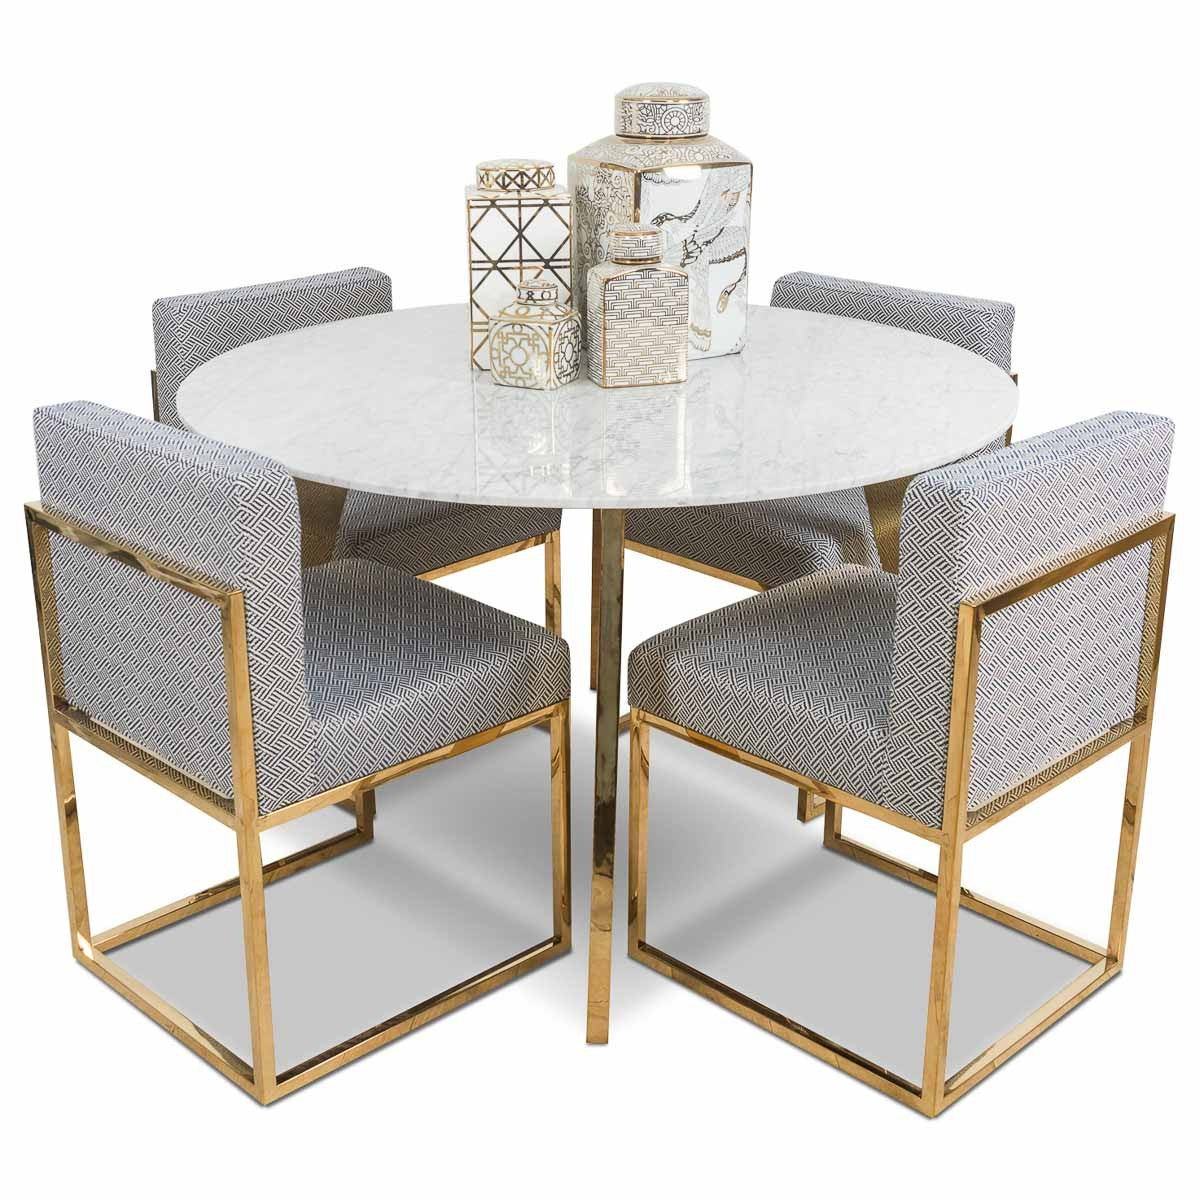 Kensington Round Dining Table - ModShop1.com